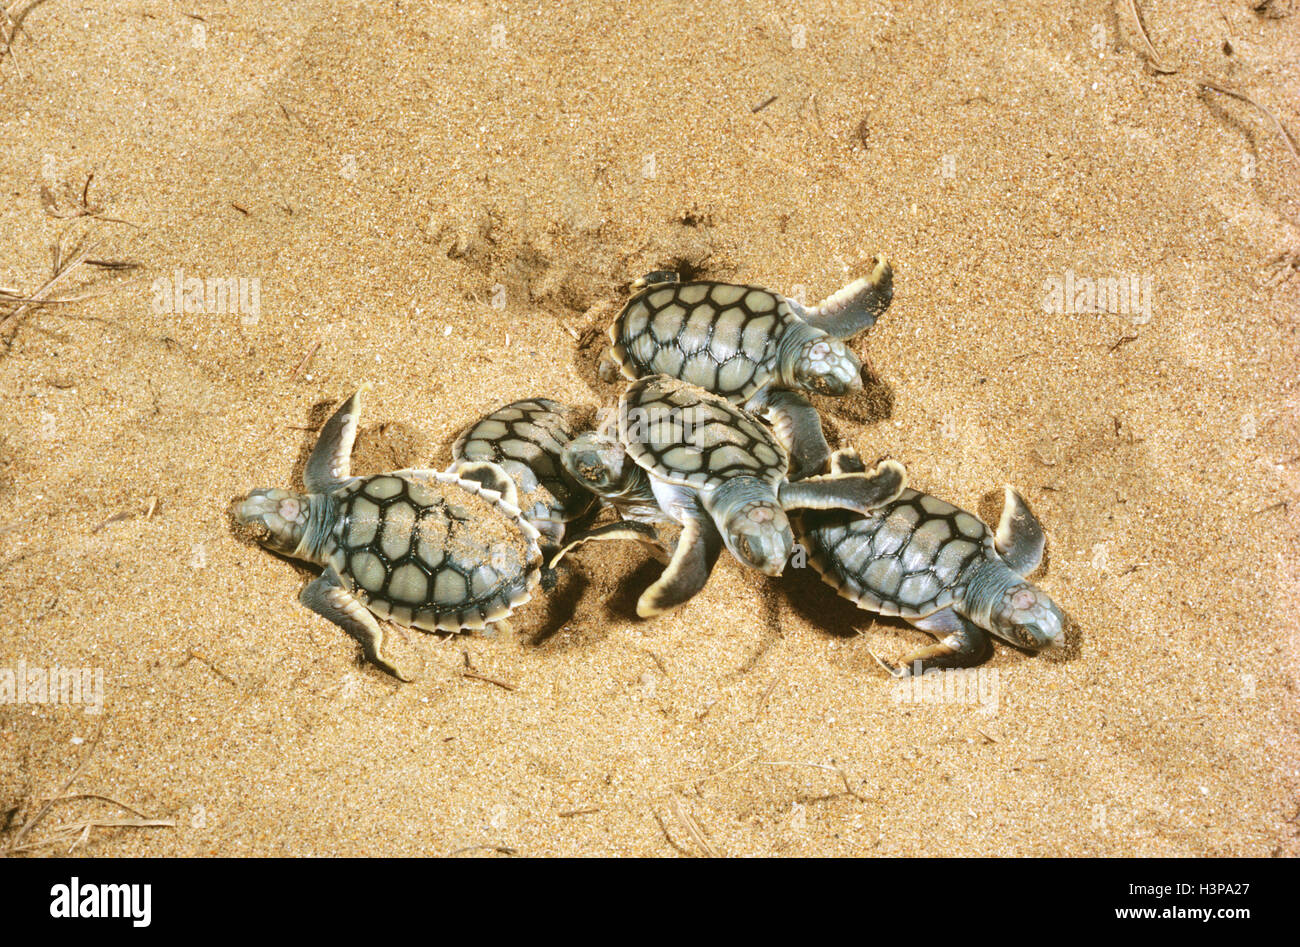 Flatback turtle (Natator depressus), hatchlings emerging from burrow. - Stock Image